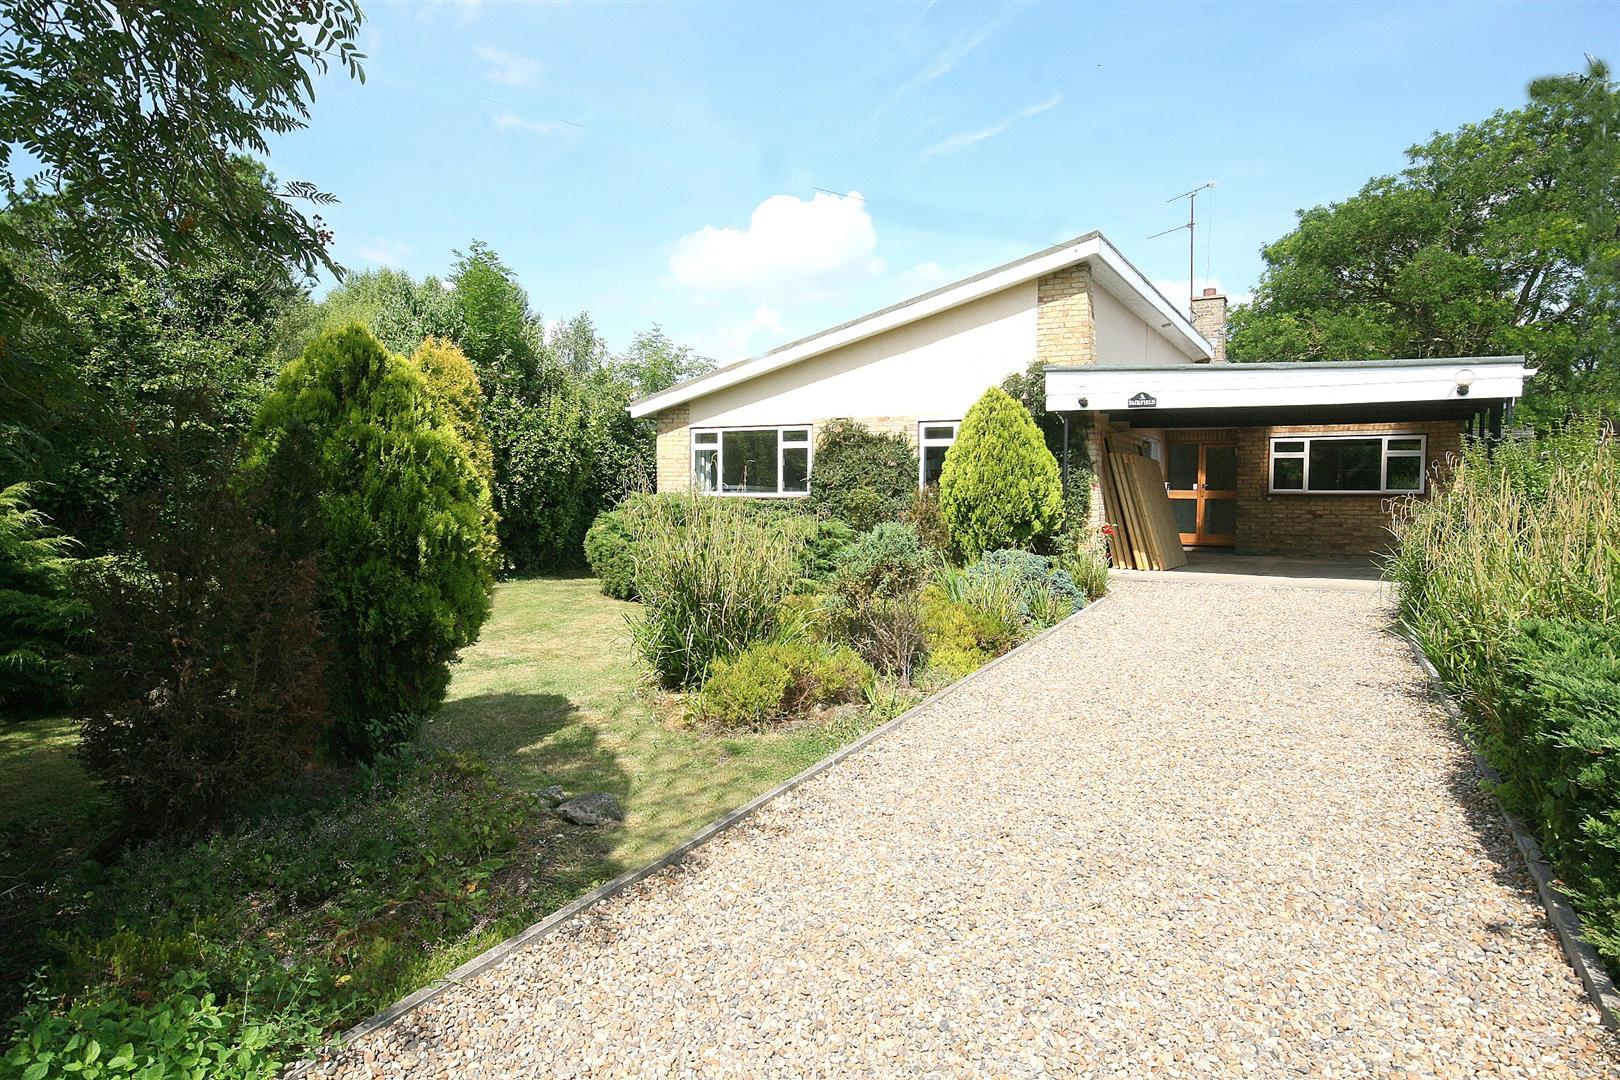 4 Bedrooms Property for sale in Fairfield, Long Marston, Herts